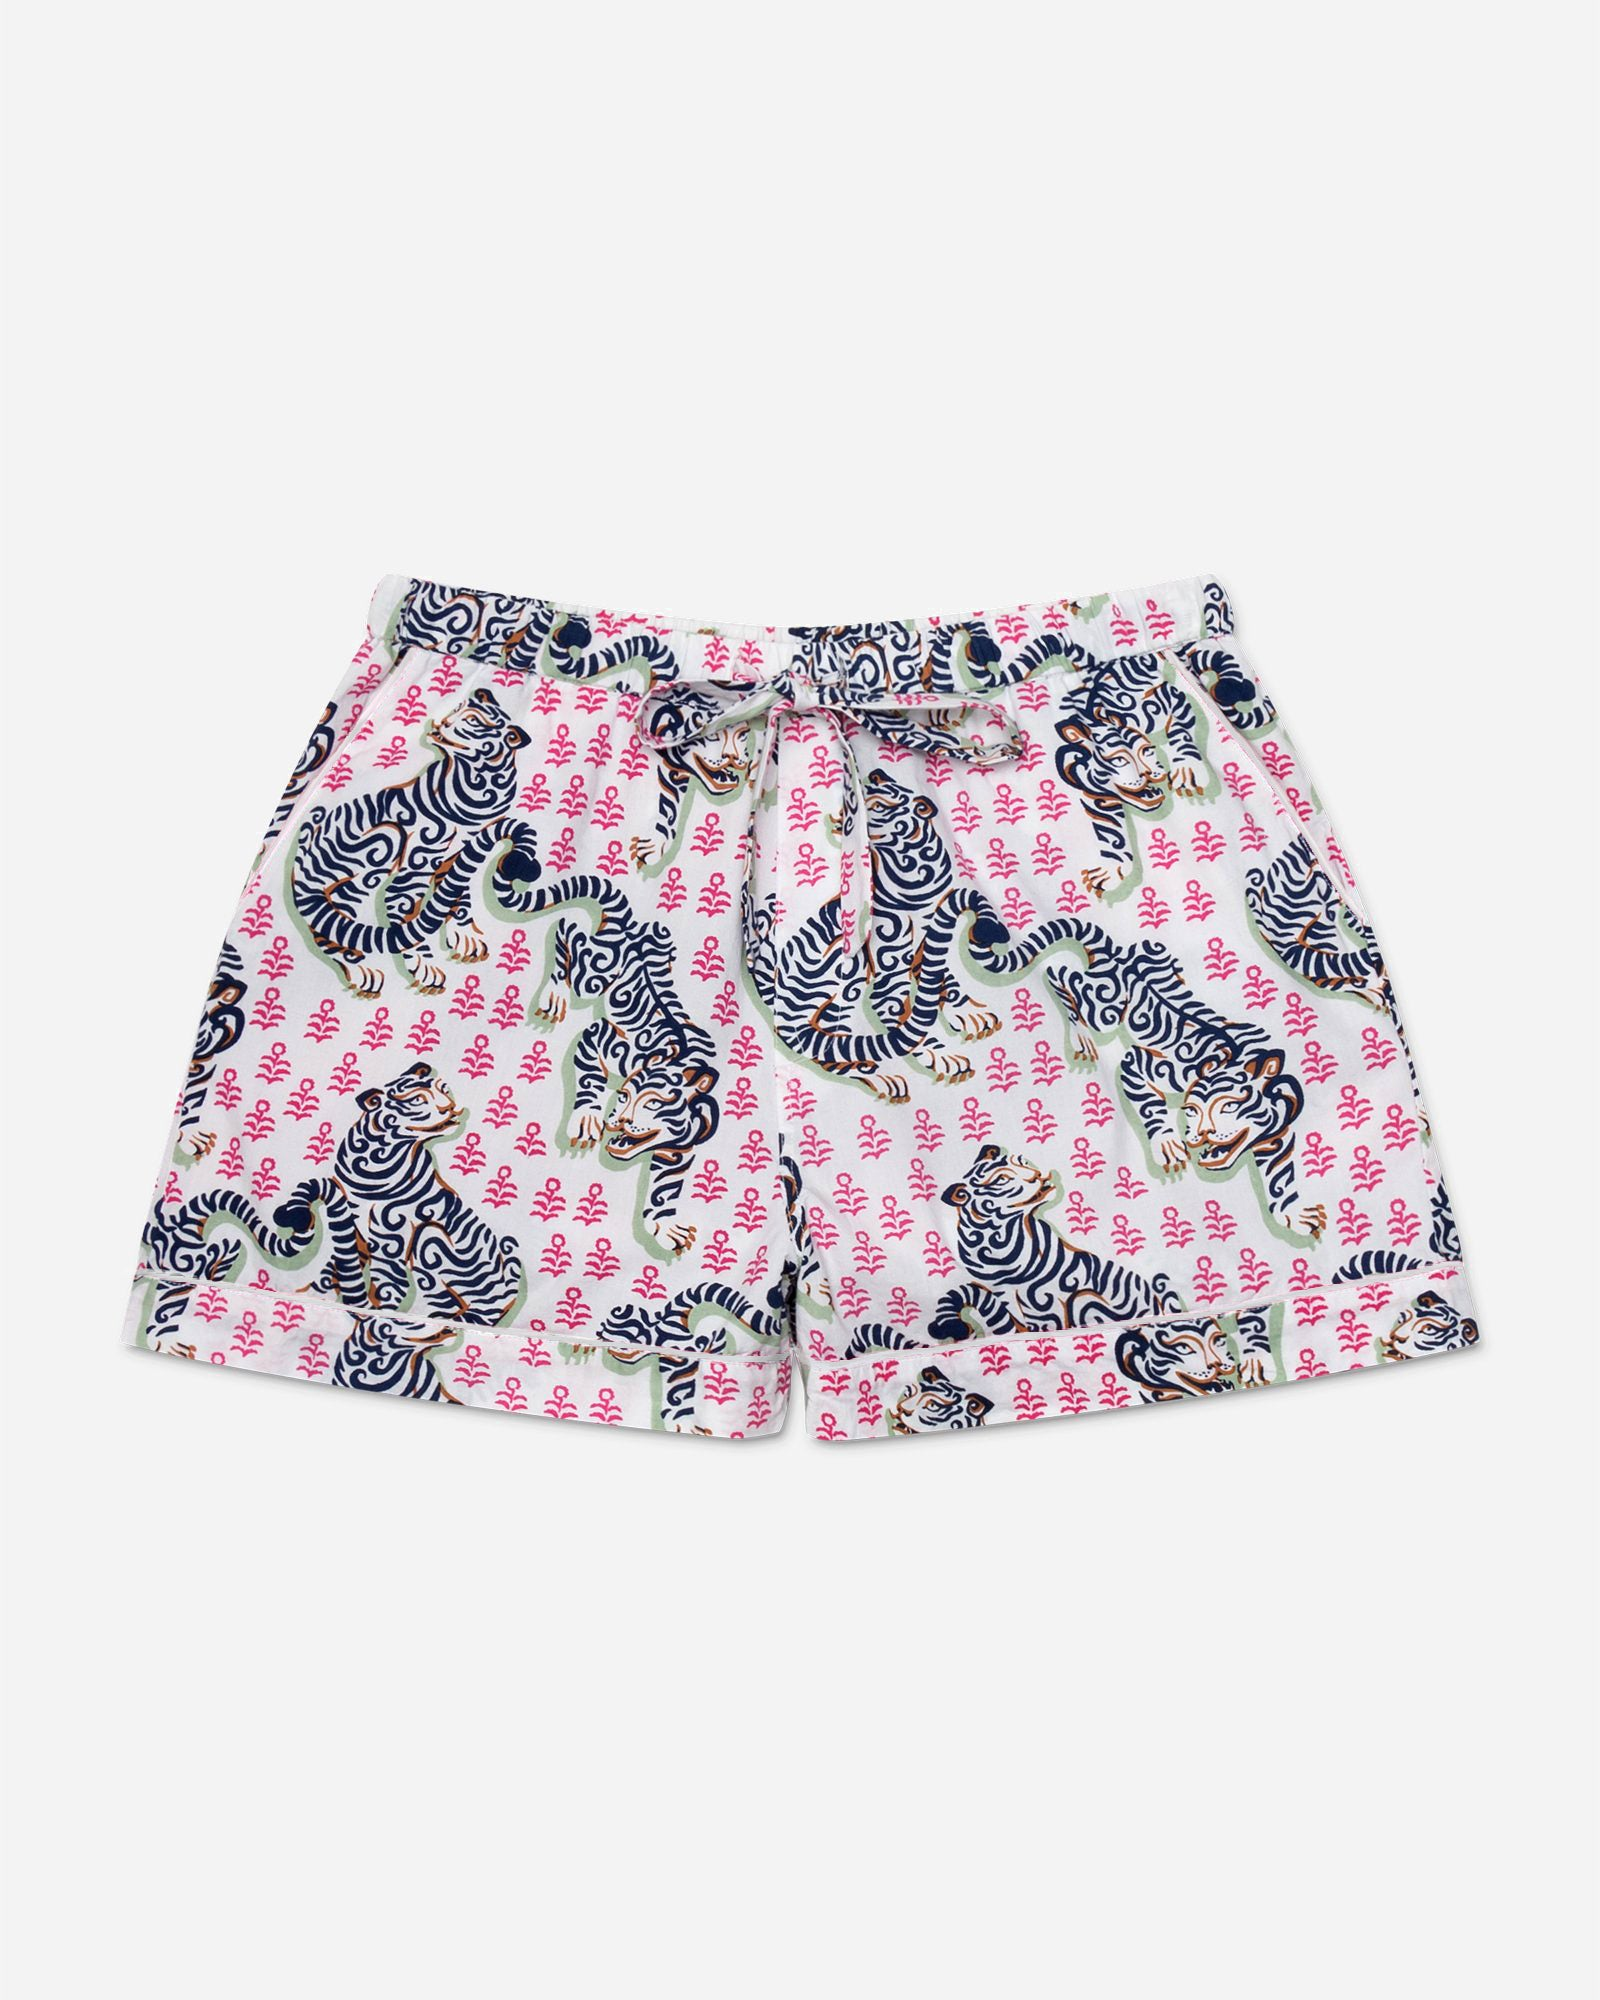 Tiger Queen - Pajama Shorts - French Rose